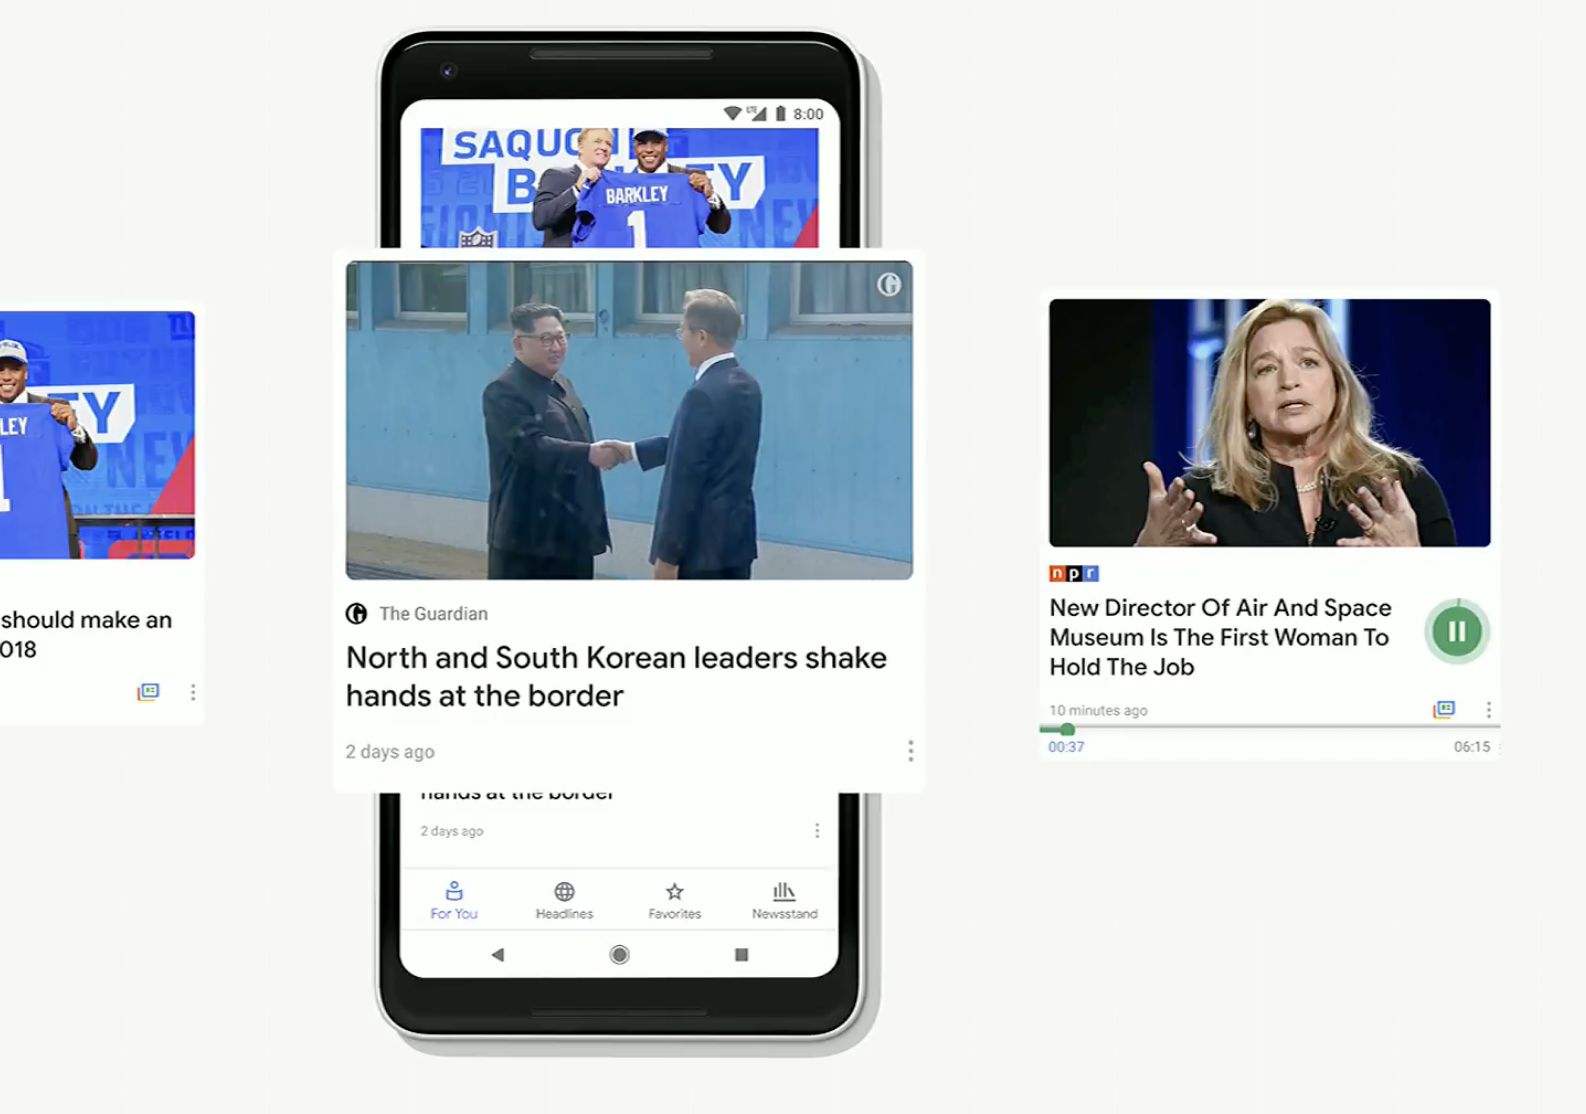 Google's News App Is All About Building Trust In A World Of Fake